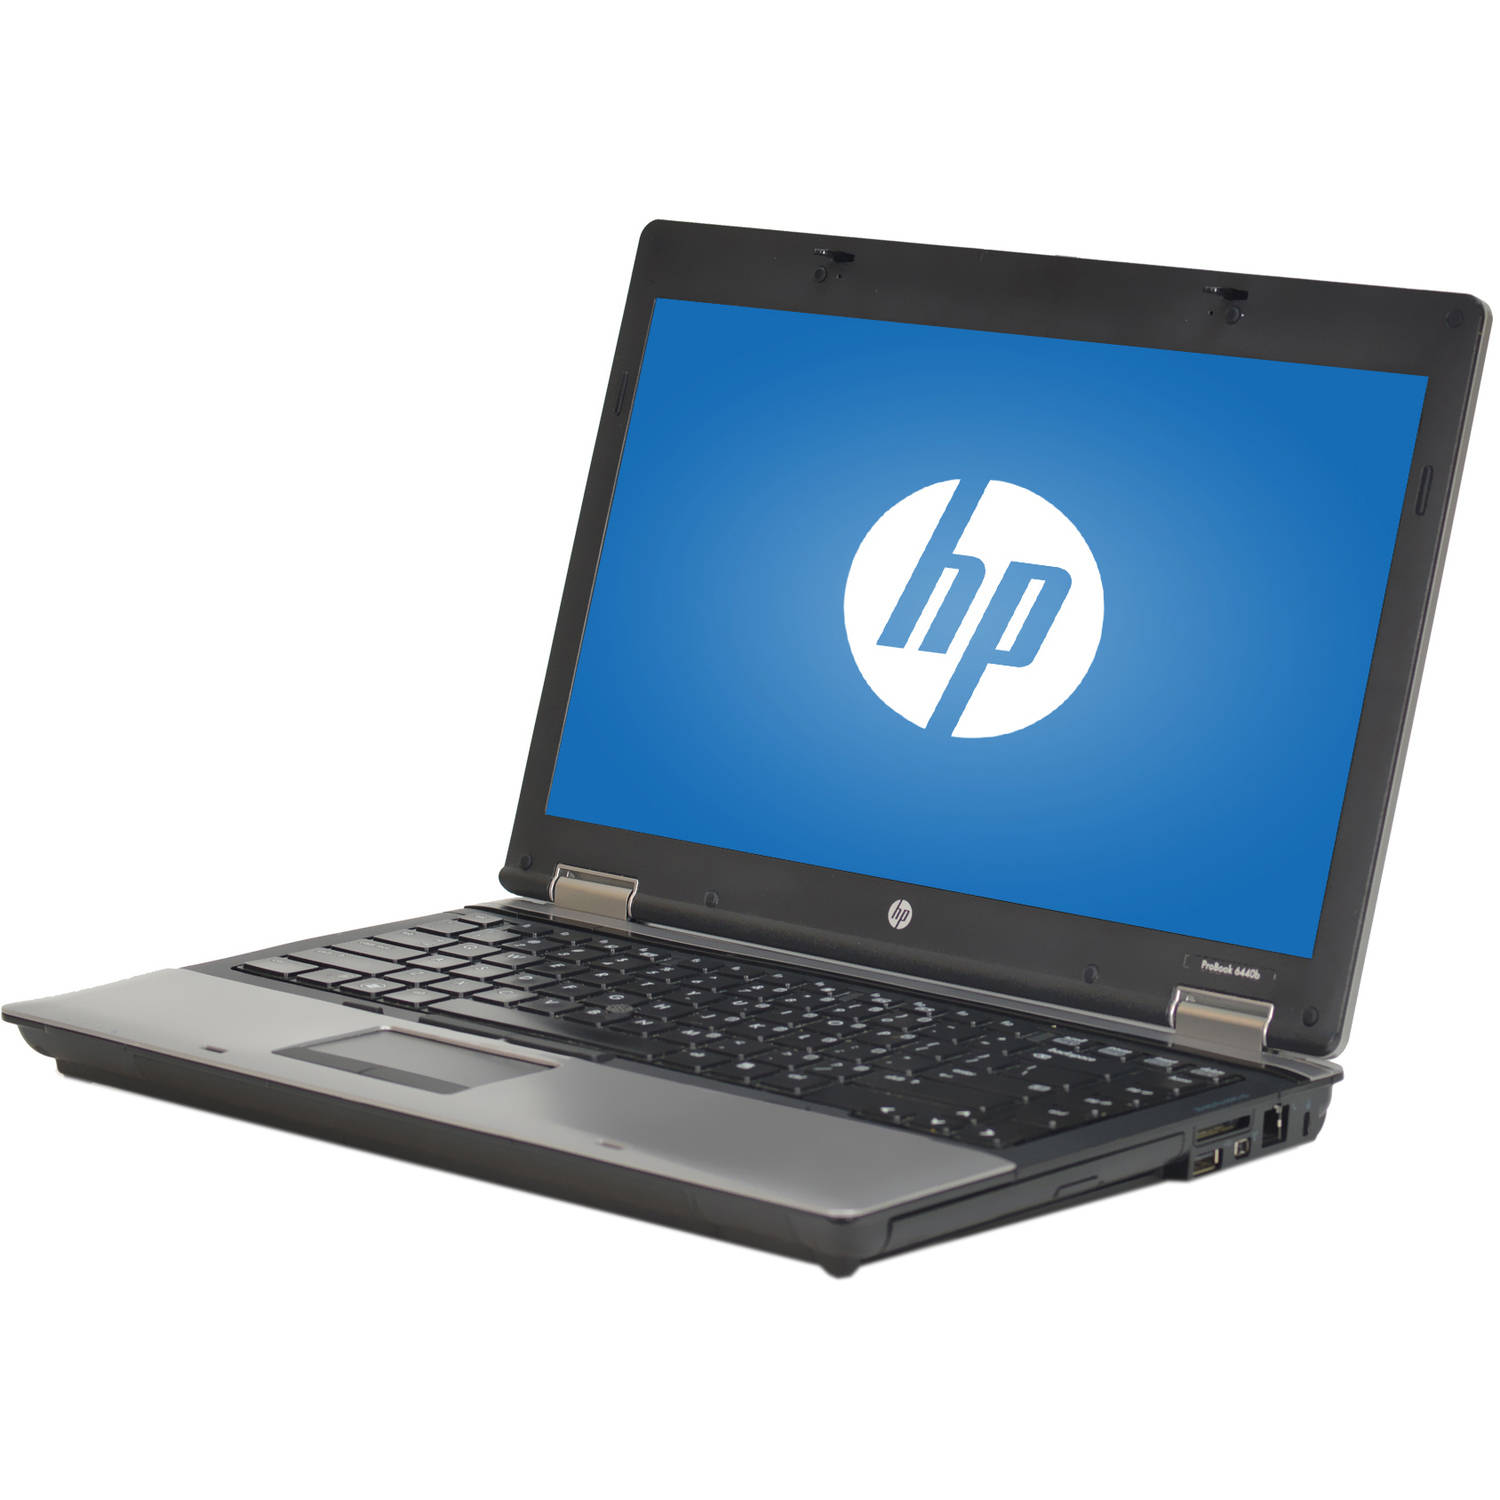 Refurbished HP 14 6440B Laptop PC with Intel Core i5 - 430M Processor, 4GB Memory, 500GB Hard Drive and Windows 10 Pro